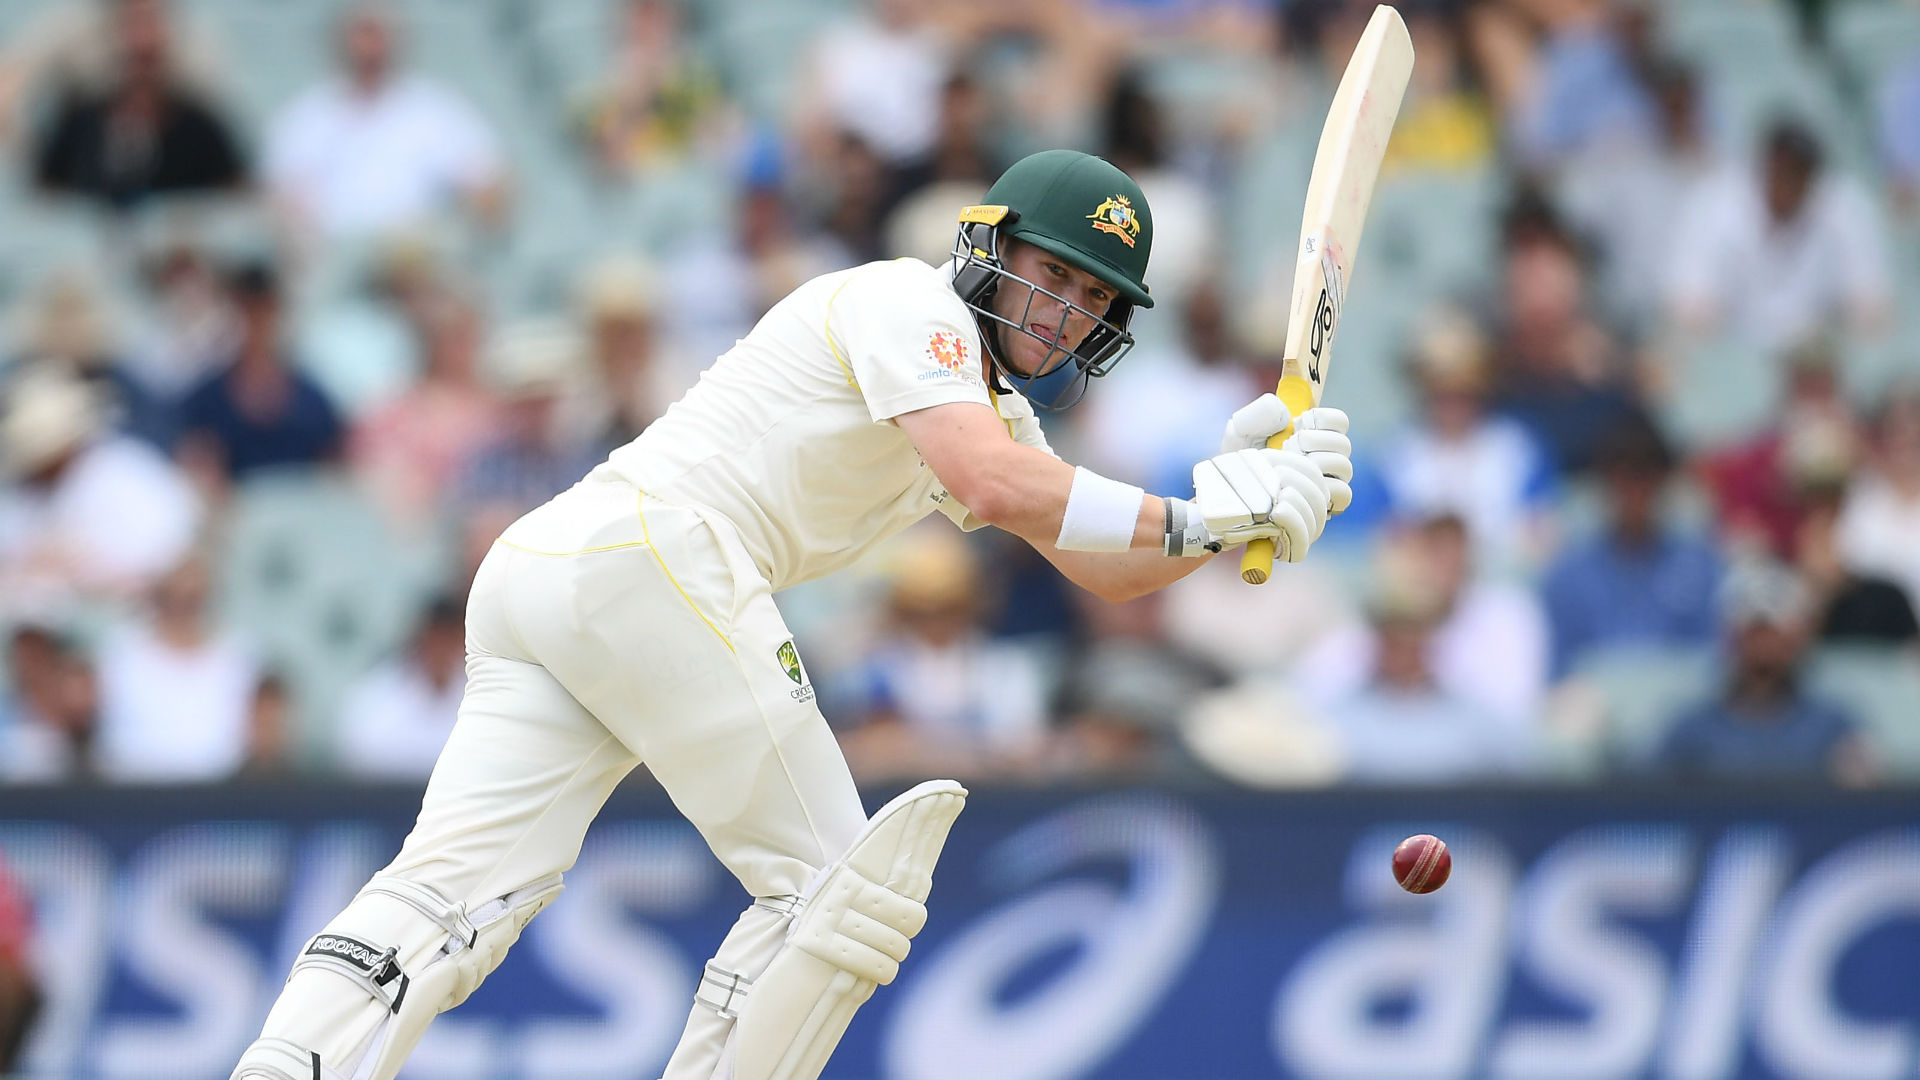 Australia v India: Debutant Marcus Harris pleads for patience after top-order misfires